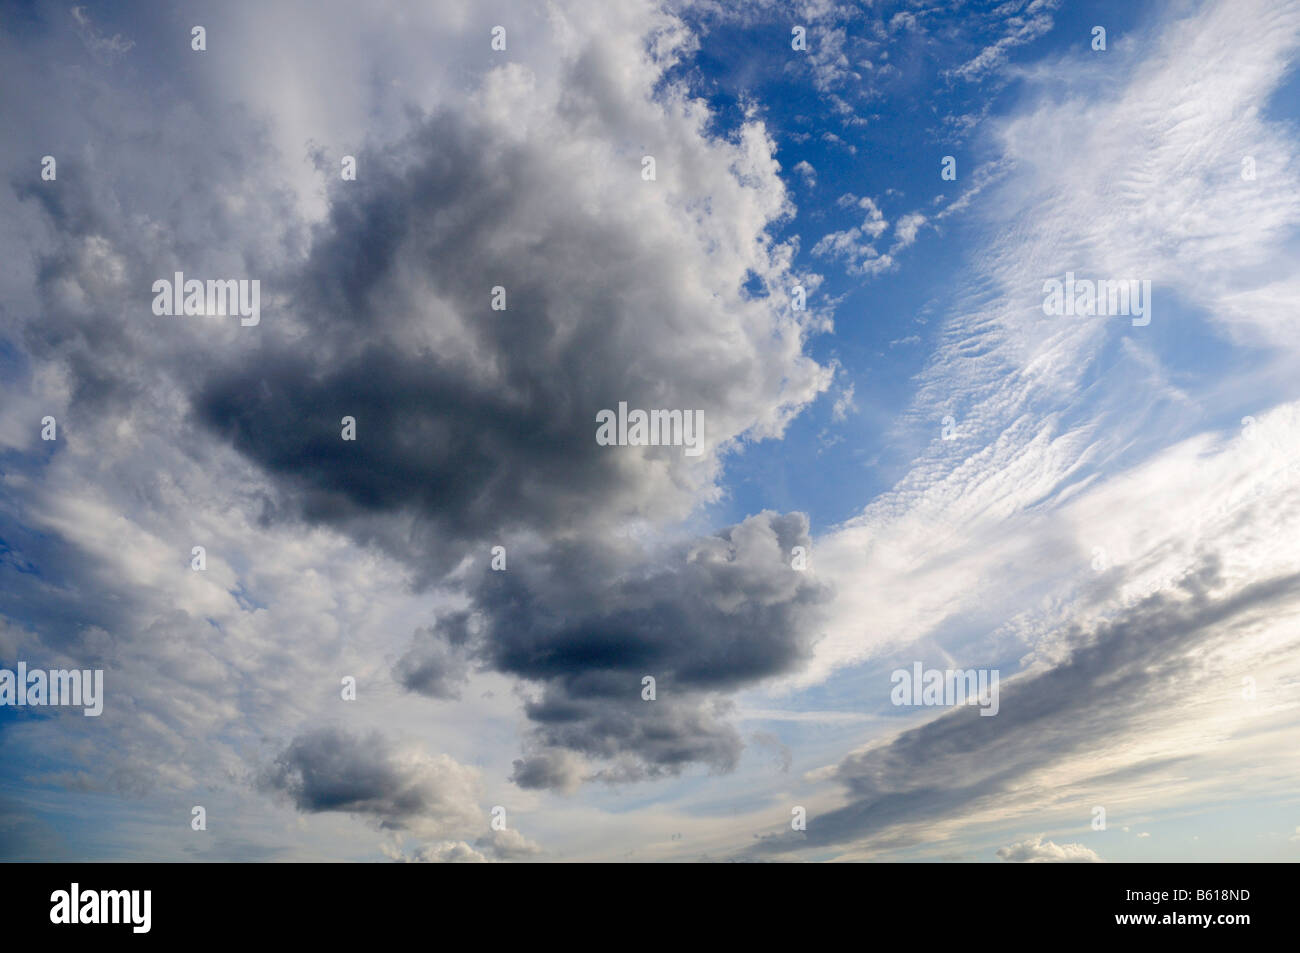 Rain clouds pushing their way in front of sunny weather clouds - Stock Image